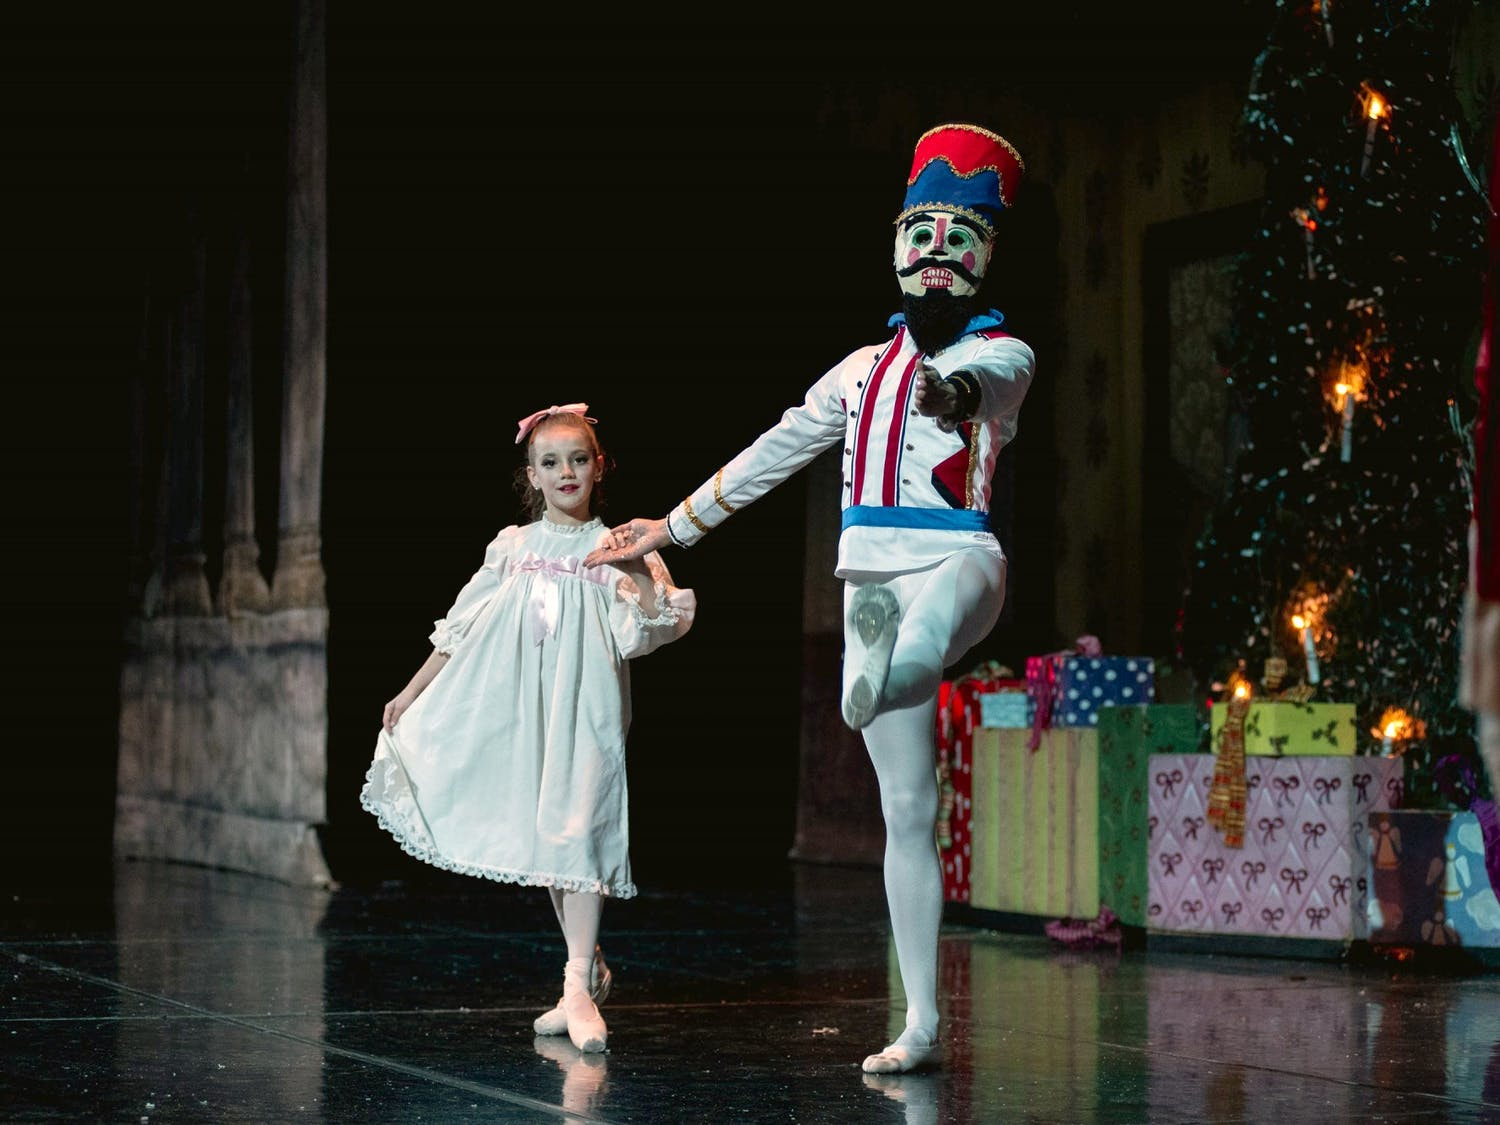 Clair Richards Rapp, who performs as Clara, and the Nutcracker share a dance in the traditional Christmas ballet.